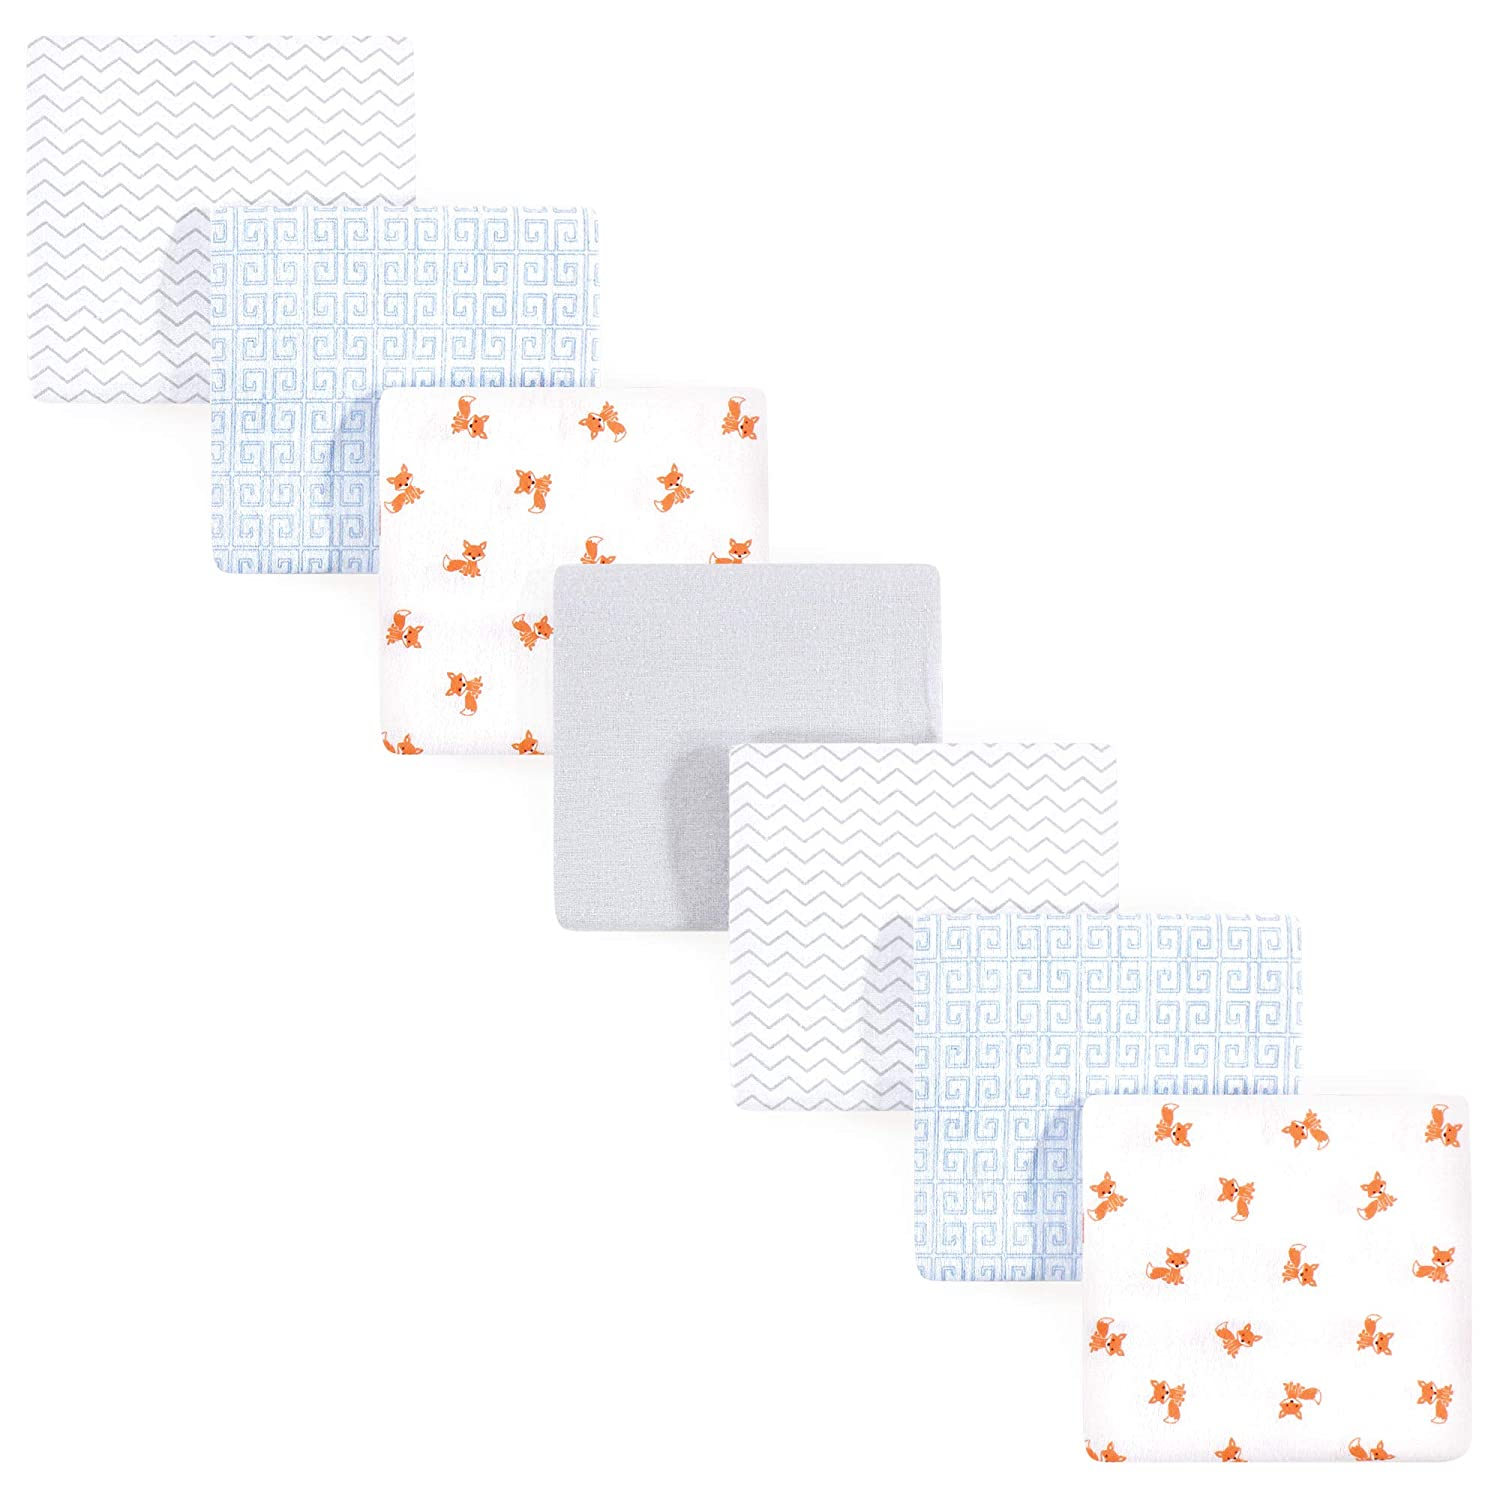 Luvable Friends Unisex Baby Flannel Receiving Blankets 7-Pack One Size Wild and Free